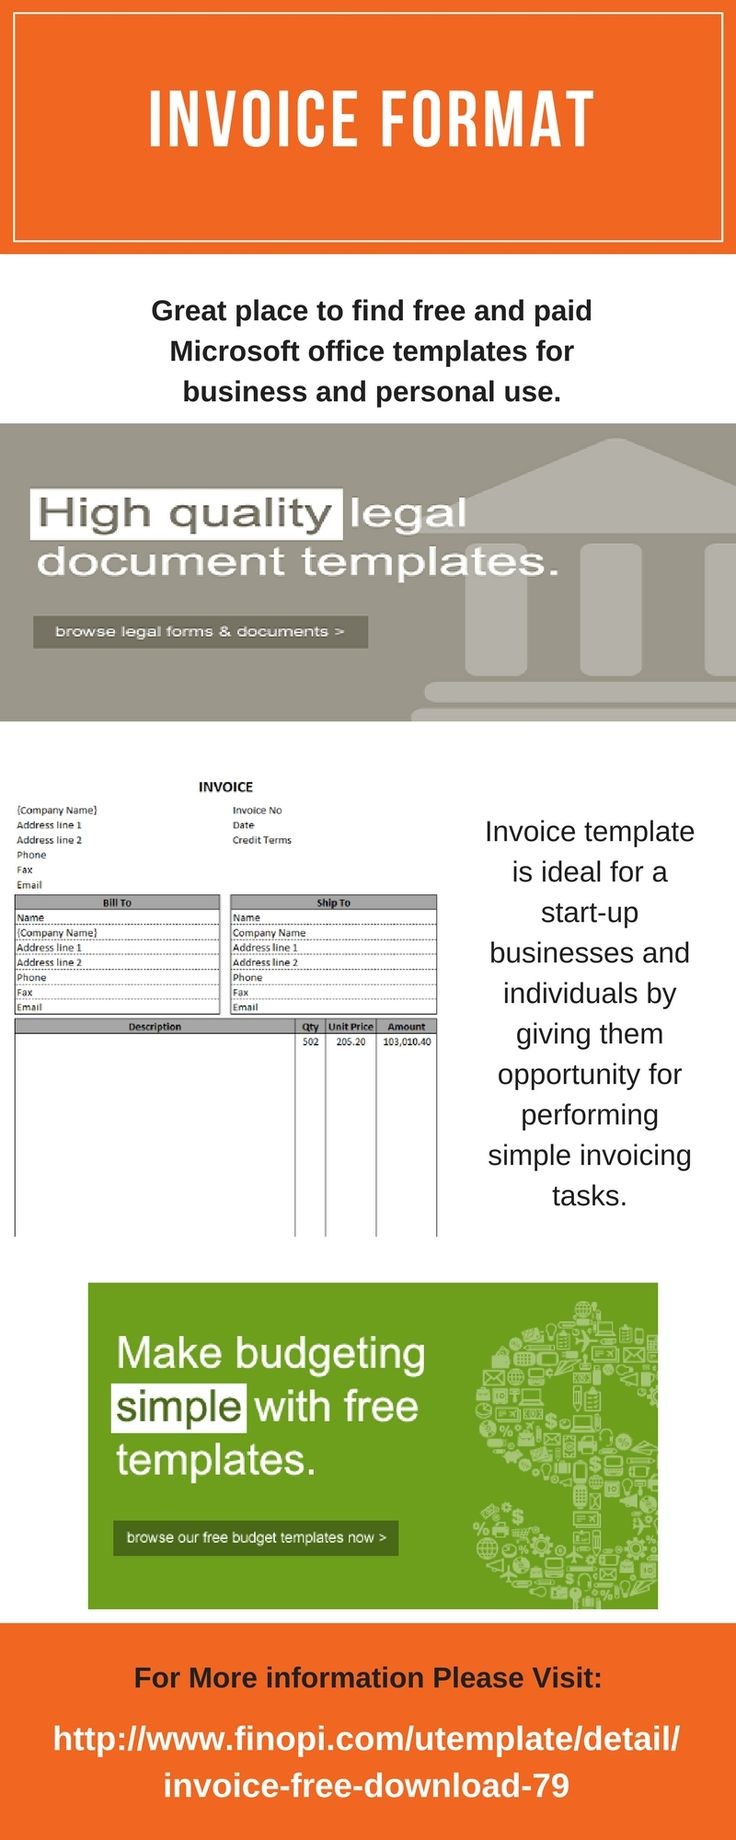 best ideas about invoice format invoice design finopi com provides you the various option to the daily usable for your business